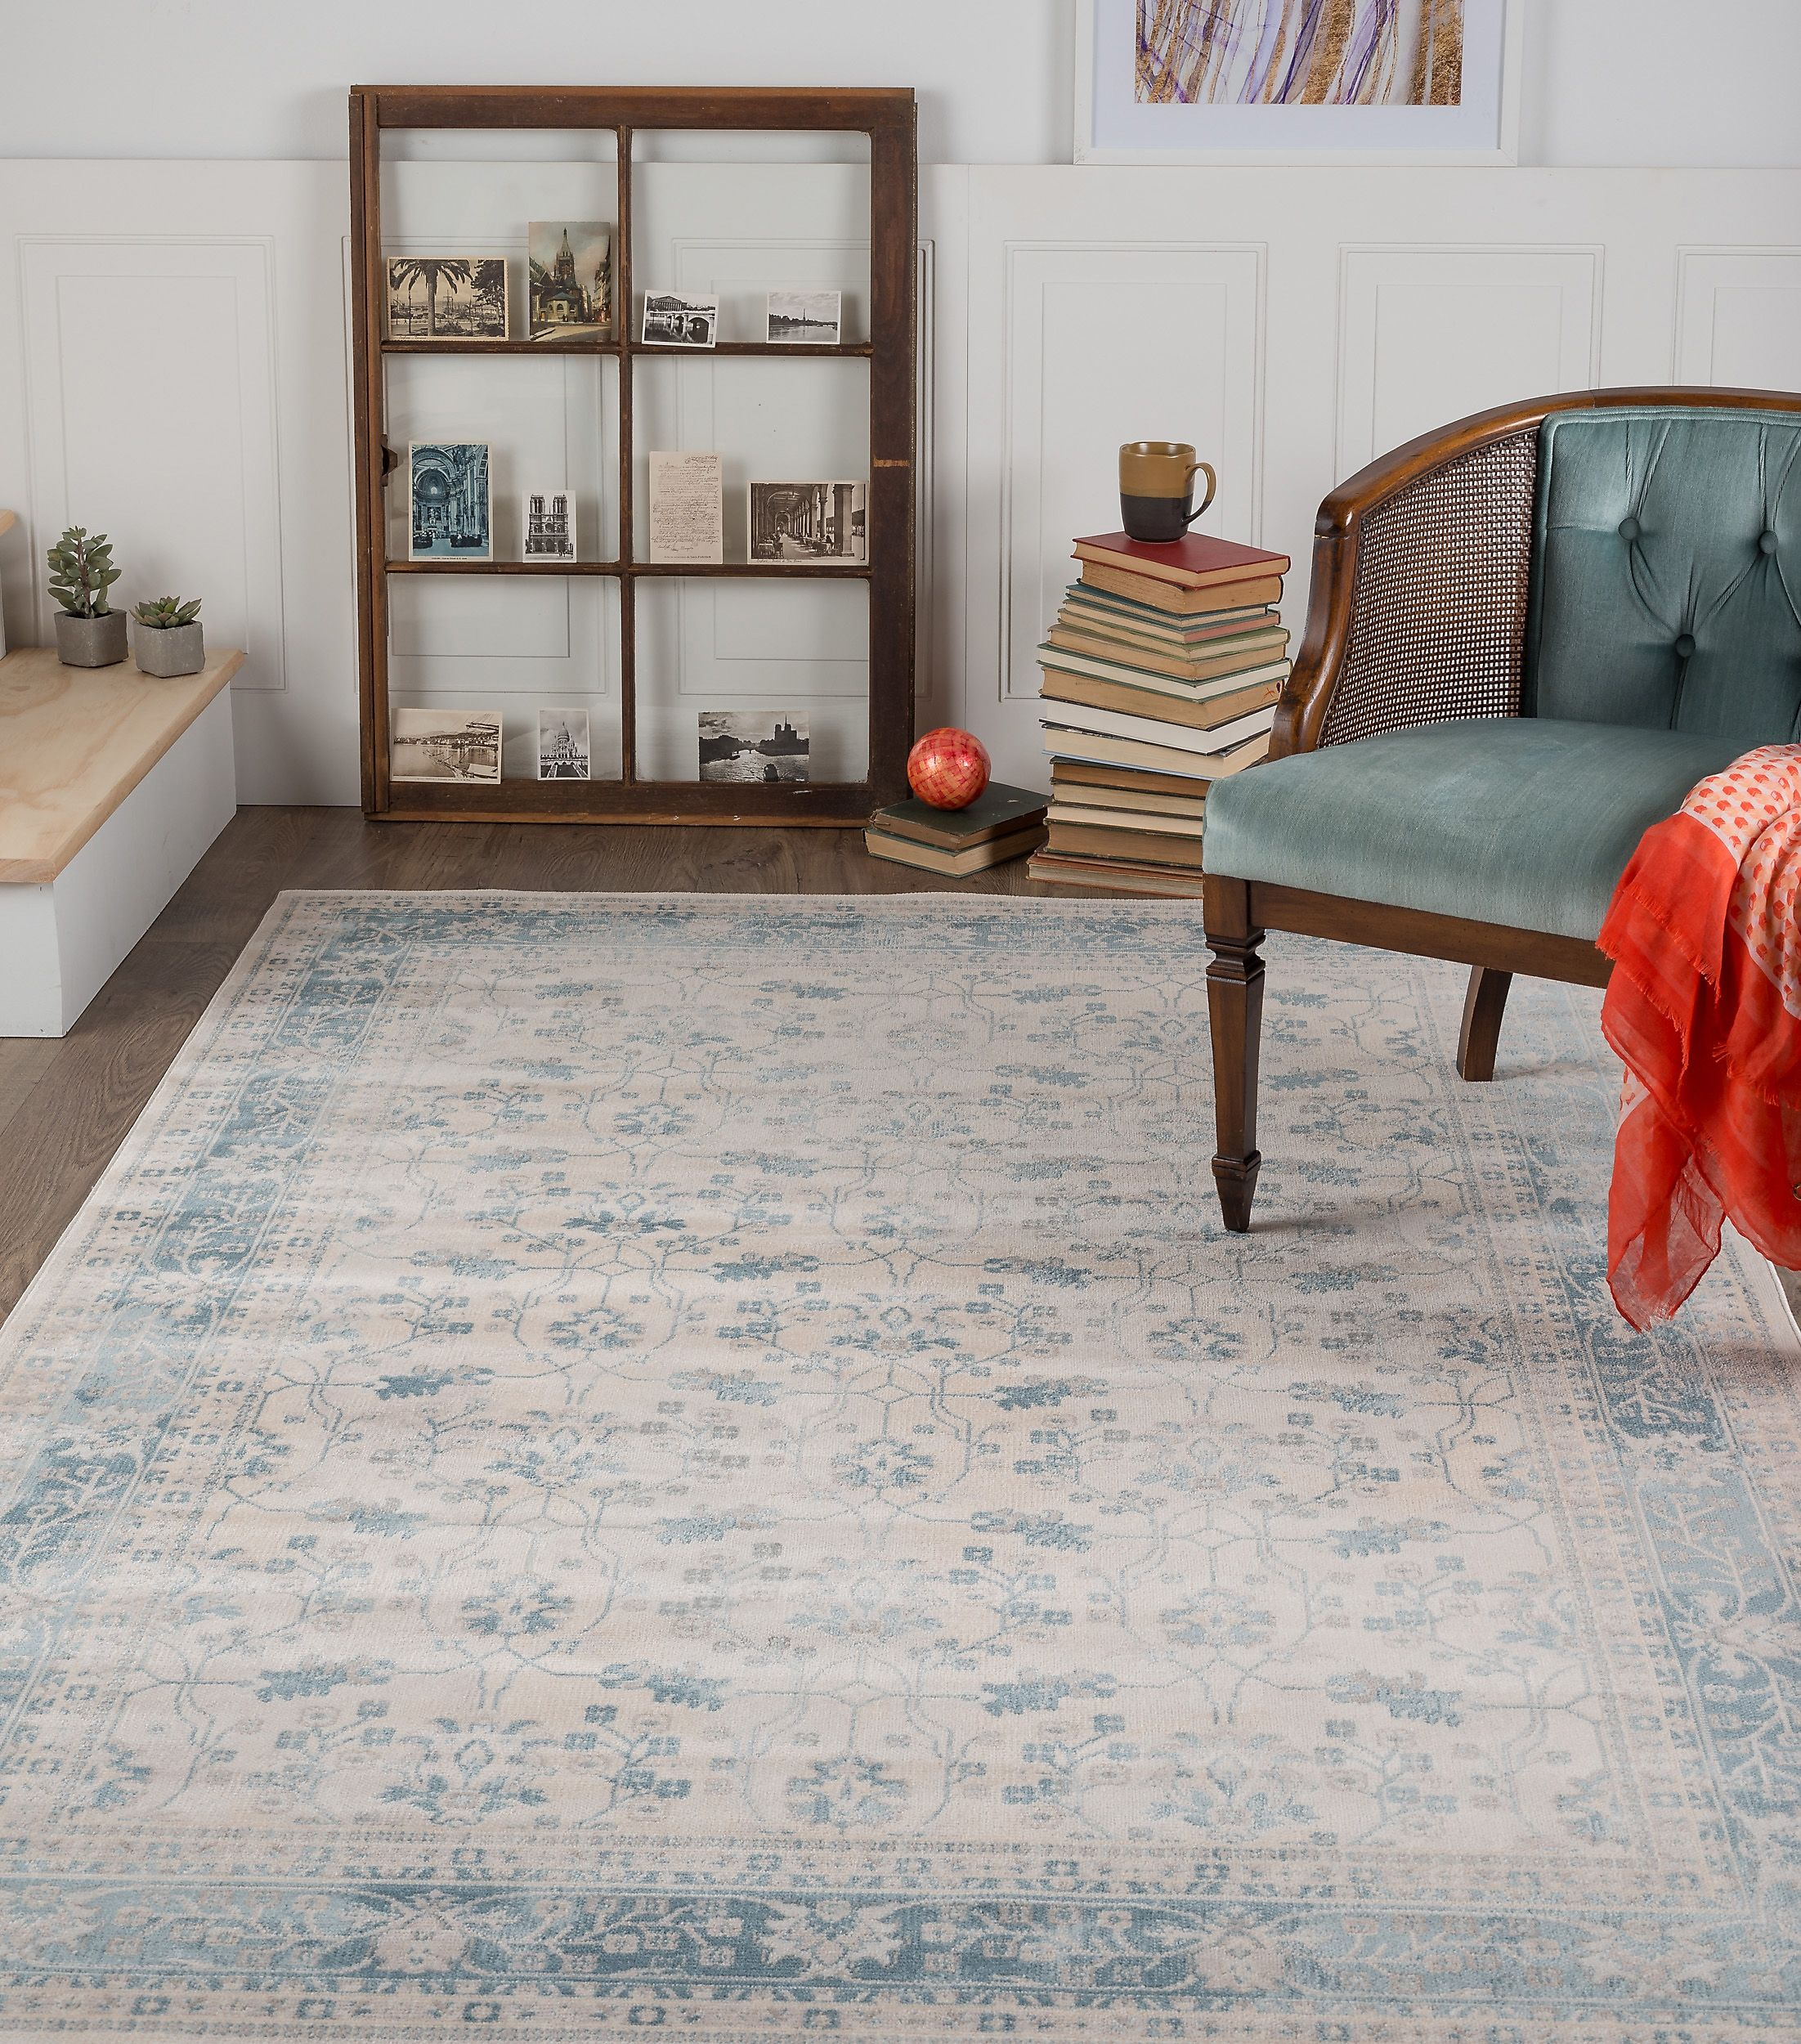 Tayse Rugs Ambiance Hanson Floral Area Rug - 7'8'' x 10'3'', Beige